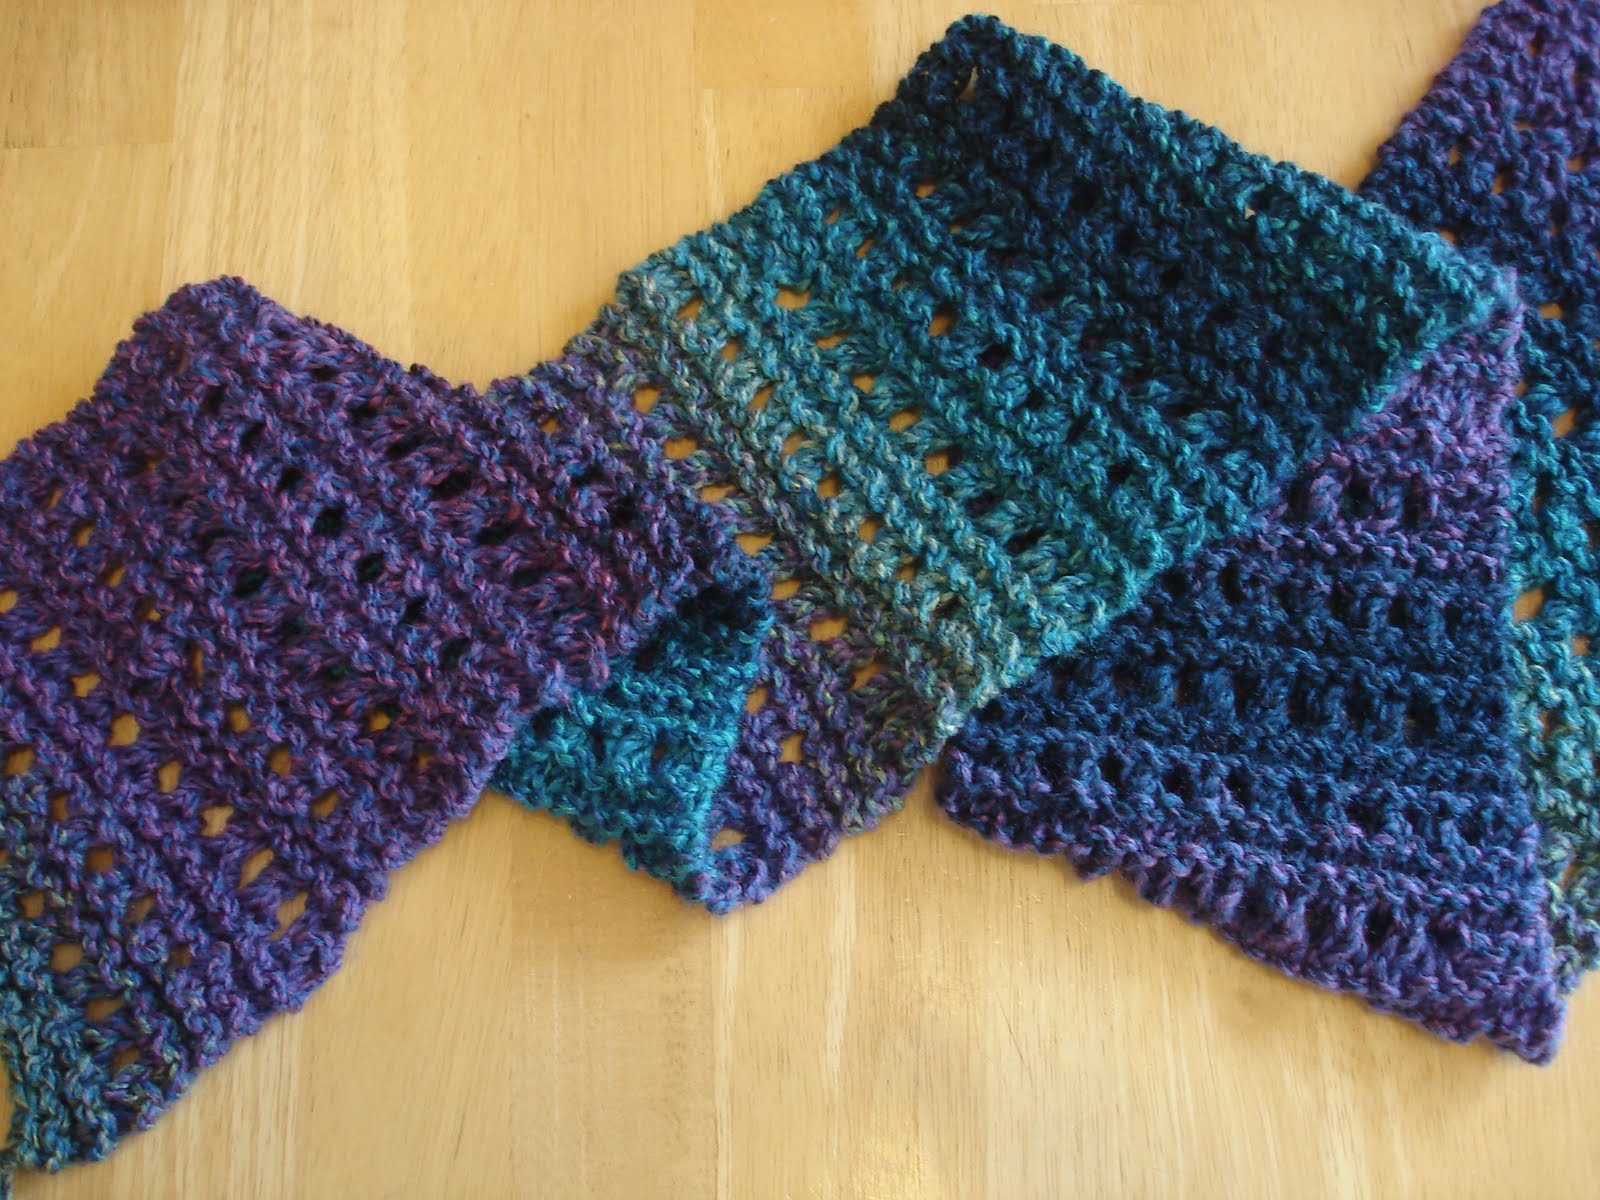 Scarf Knitting Pattern : Fiber Flux: Free Knitting Patterns